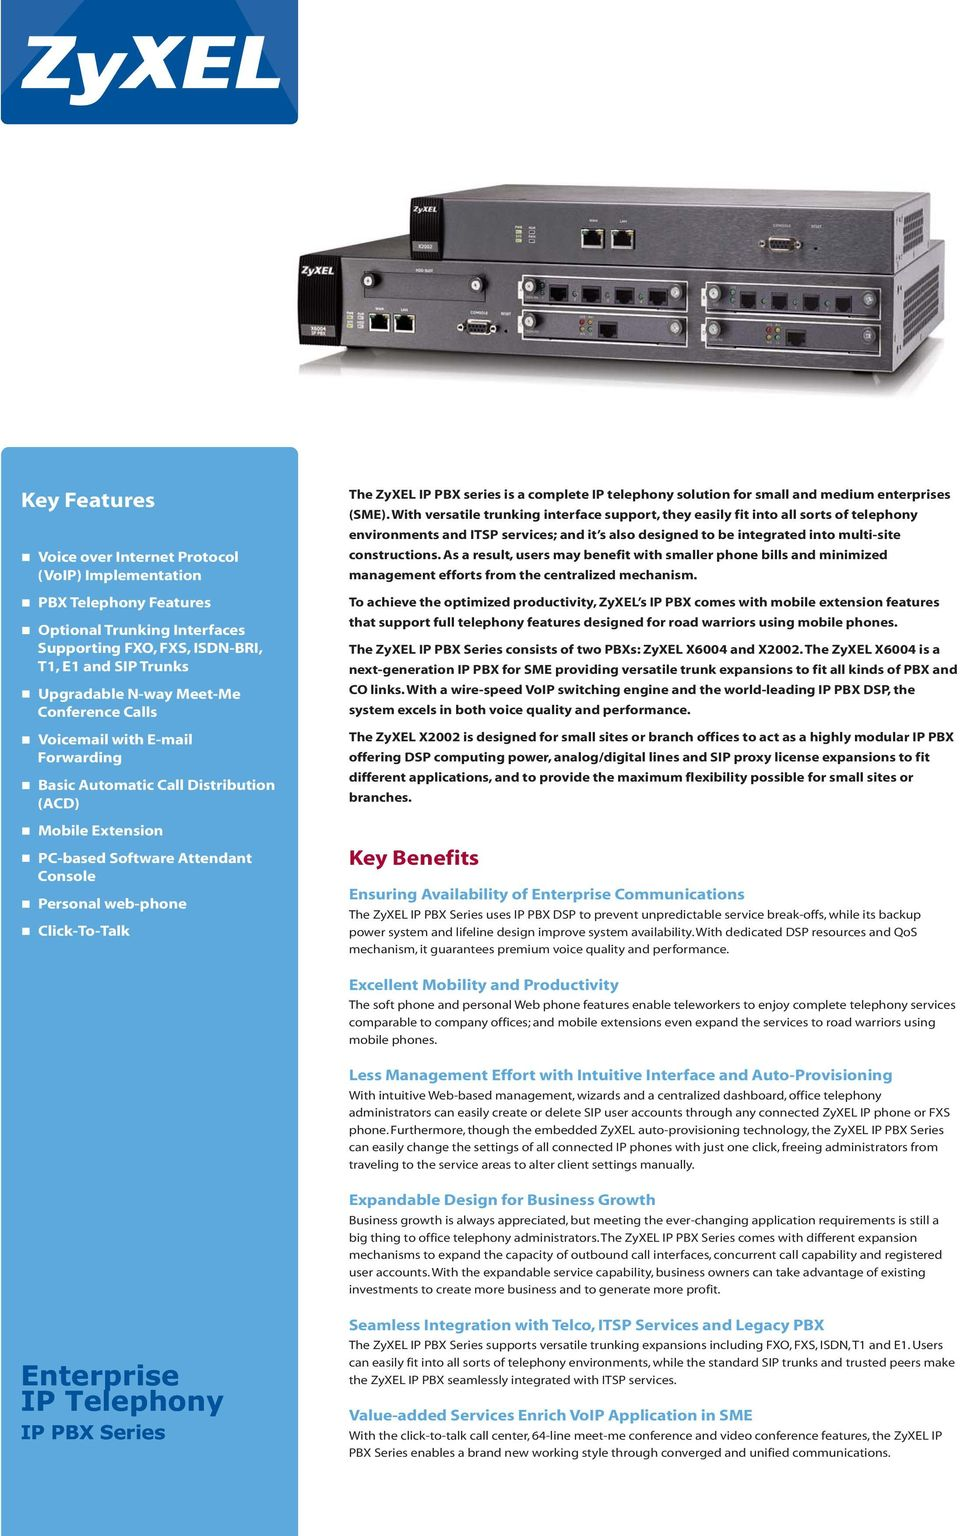 IP telephony solution for small and medium enterprises (SME).